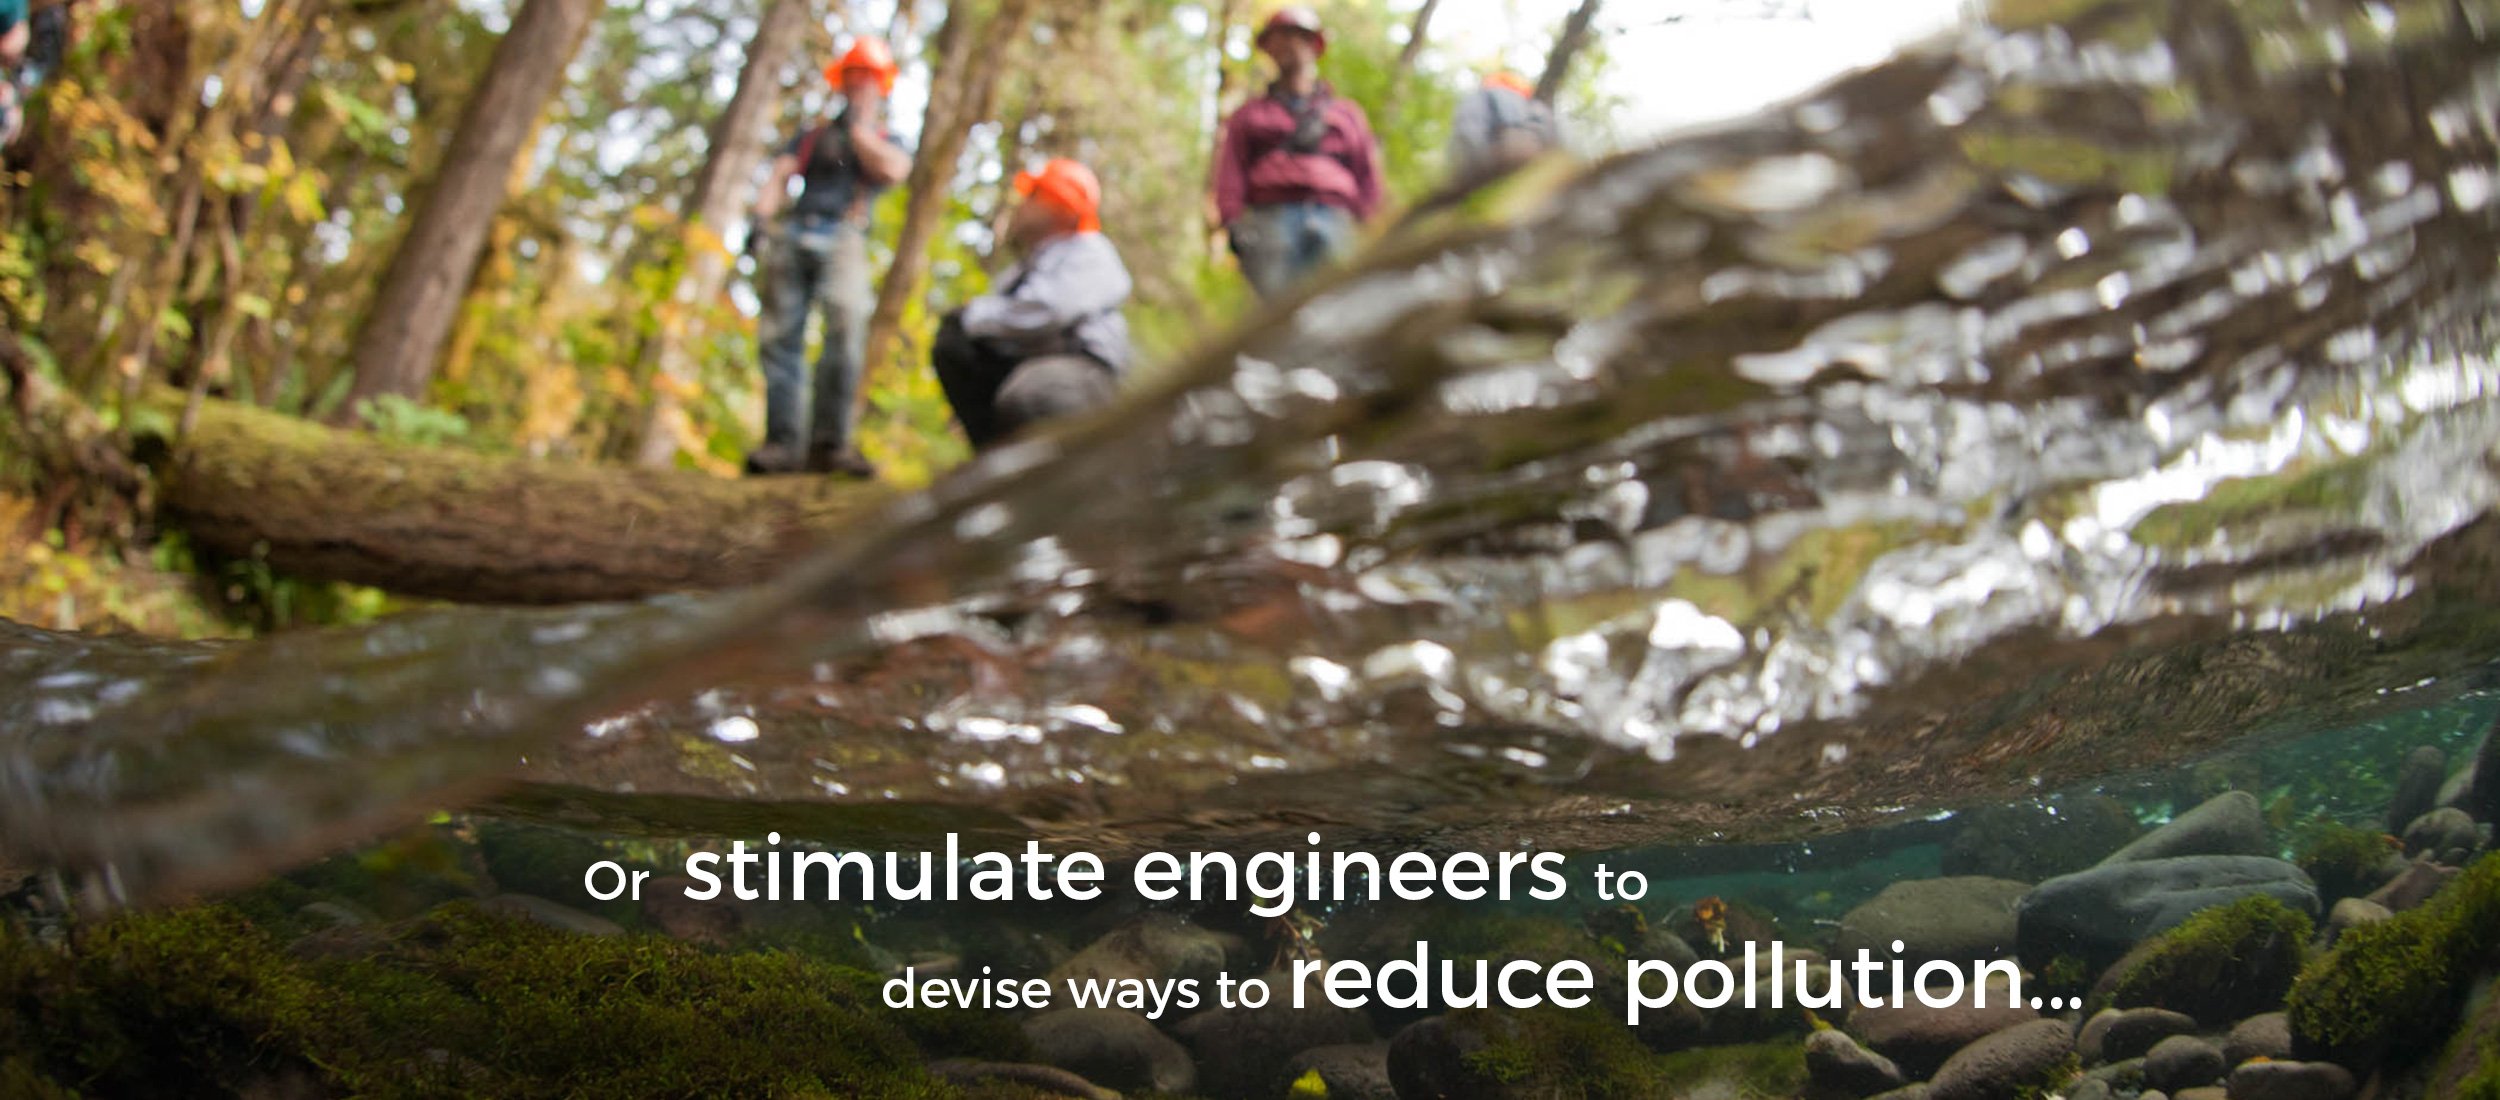 or stimulate engineers to devise ways to reduce pollution...